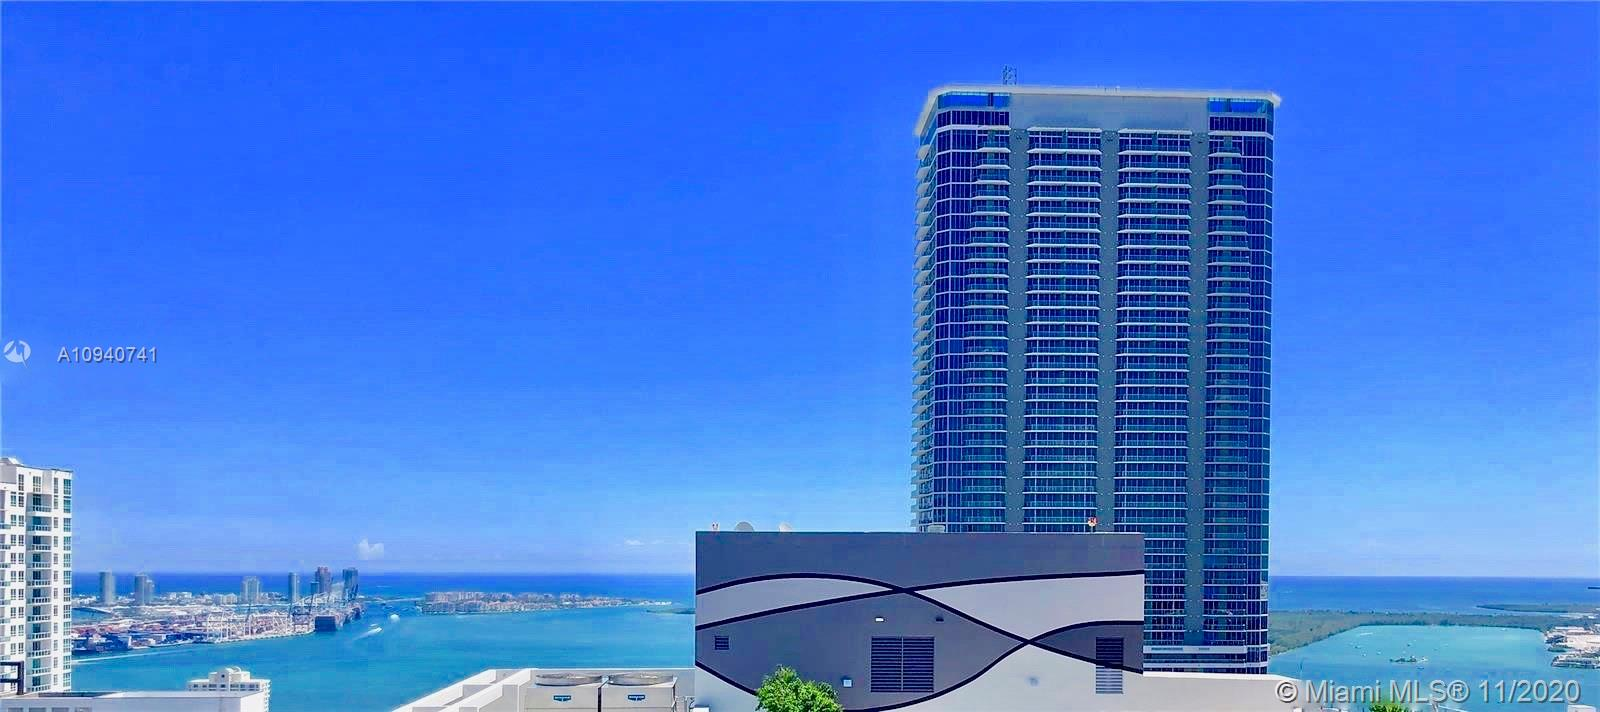 Amazing Home in the Sky from this high floor PH. Bay & Ocean views from this 3 Bed/3.5 Bath at Brickell Flatiron with 10ft ceilings - Brickell Flatiron Great opportunity to call the beautiful and centrally located 64-story glass tower your home. The penthouse residence features Italian premium porcelain and marble floors, Snaidero kitchen , Miele appliances, floor to ceiling windows, expansive terrace with panoramic views of the Miami skyline. Unparallaled services and resort style amenities including a rooftop sky deck on the 64th floor, pool, spa, fitness center with pilates/yoga and aerobics studio, private steam and sauna rooms, children's play area, game room, movie theatre and recreation rooms. Walking distance to world renown shops and restaurants